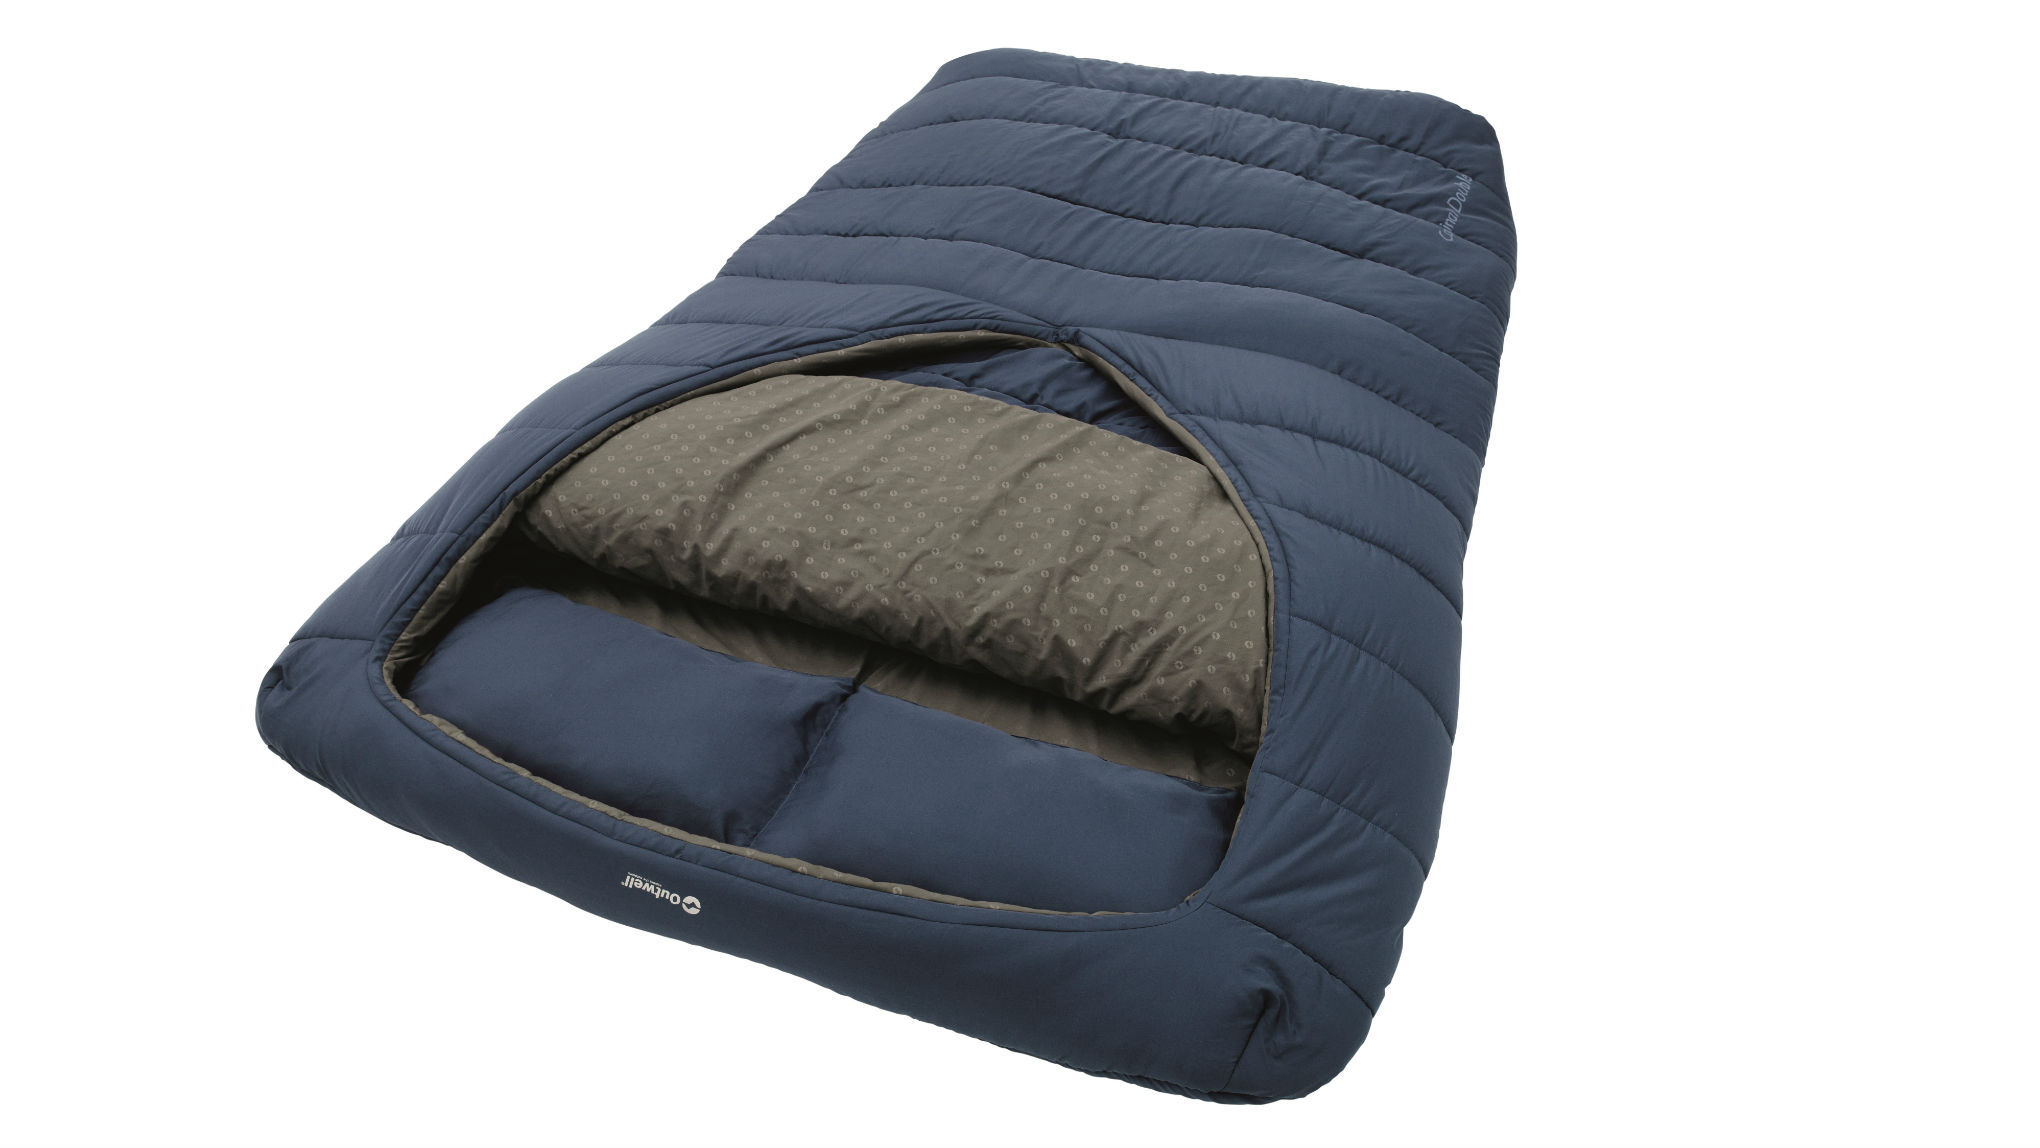 Best Sleeping Bag The Best Sleeping Bags From 163 16